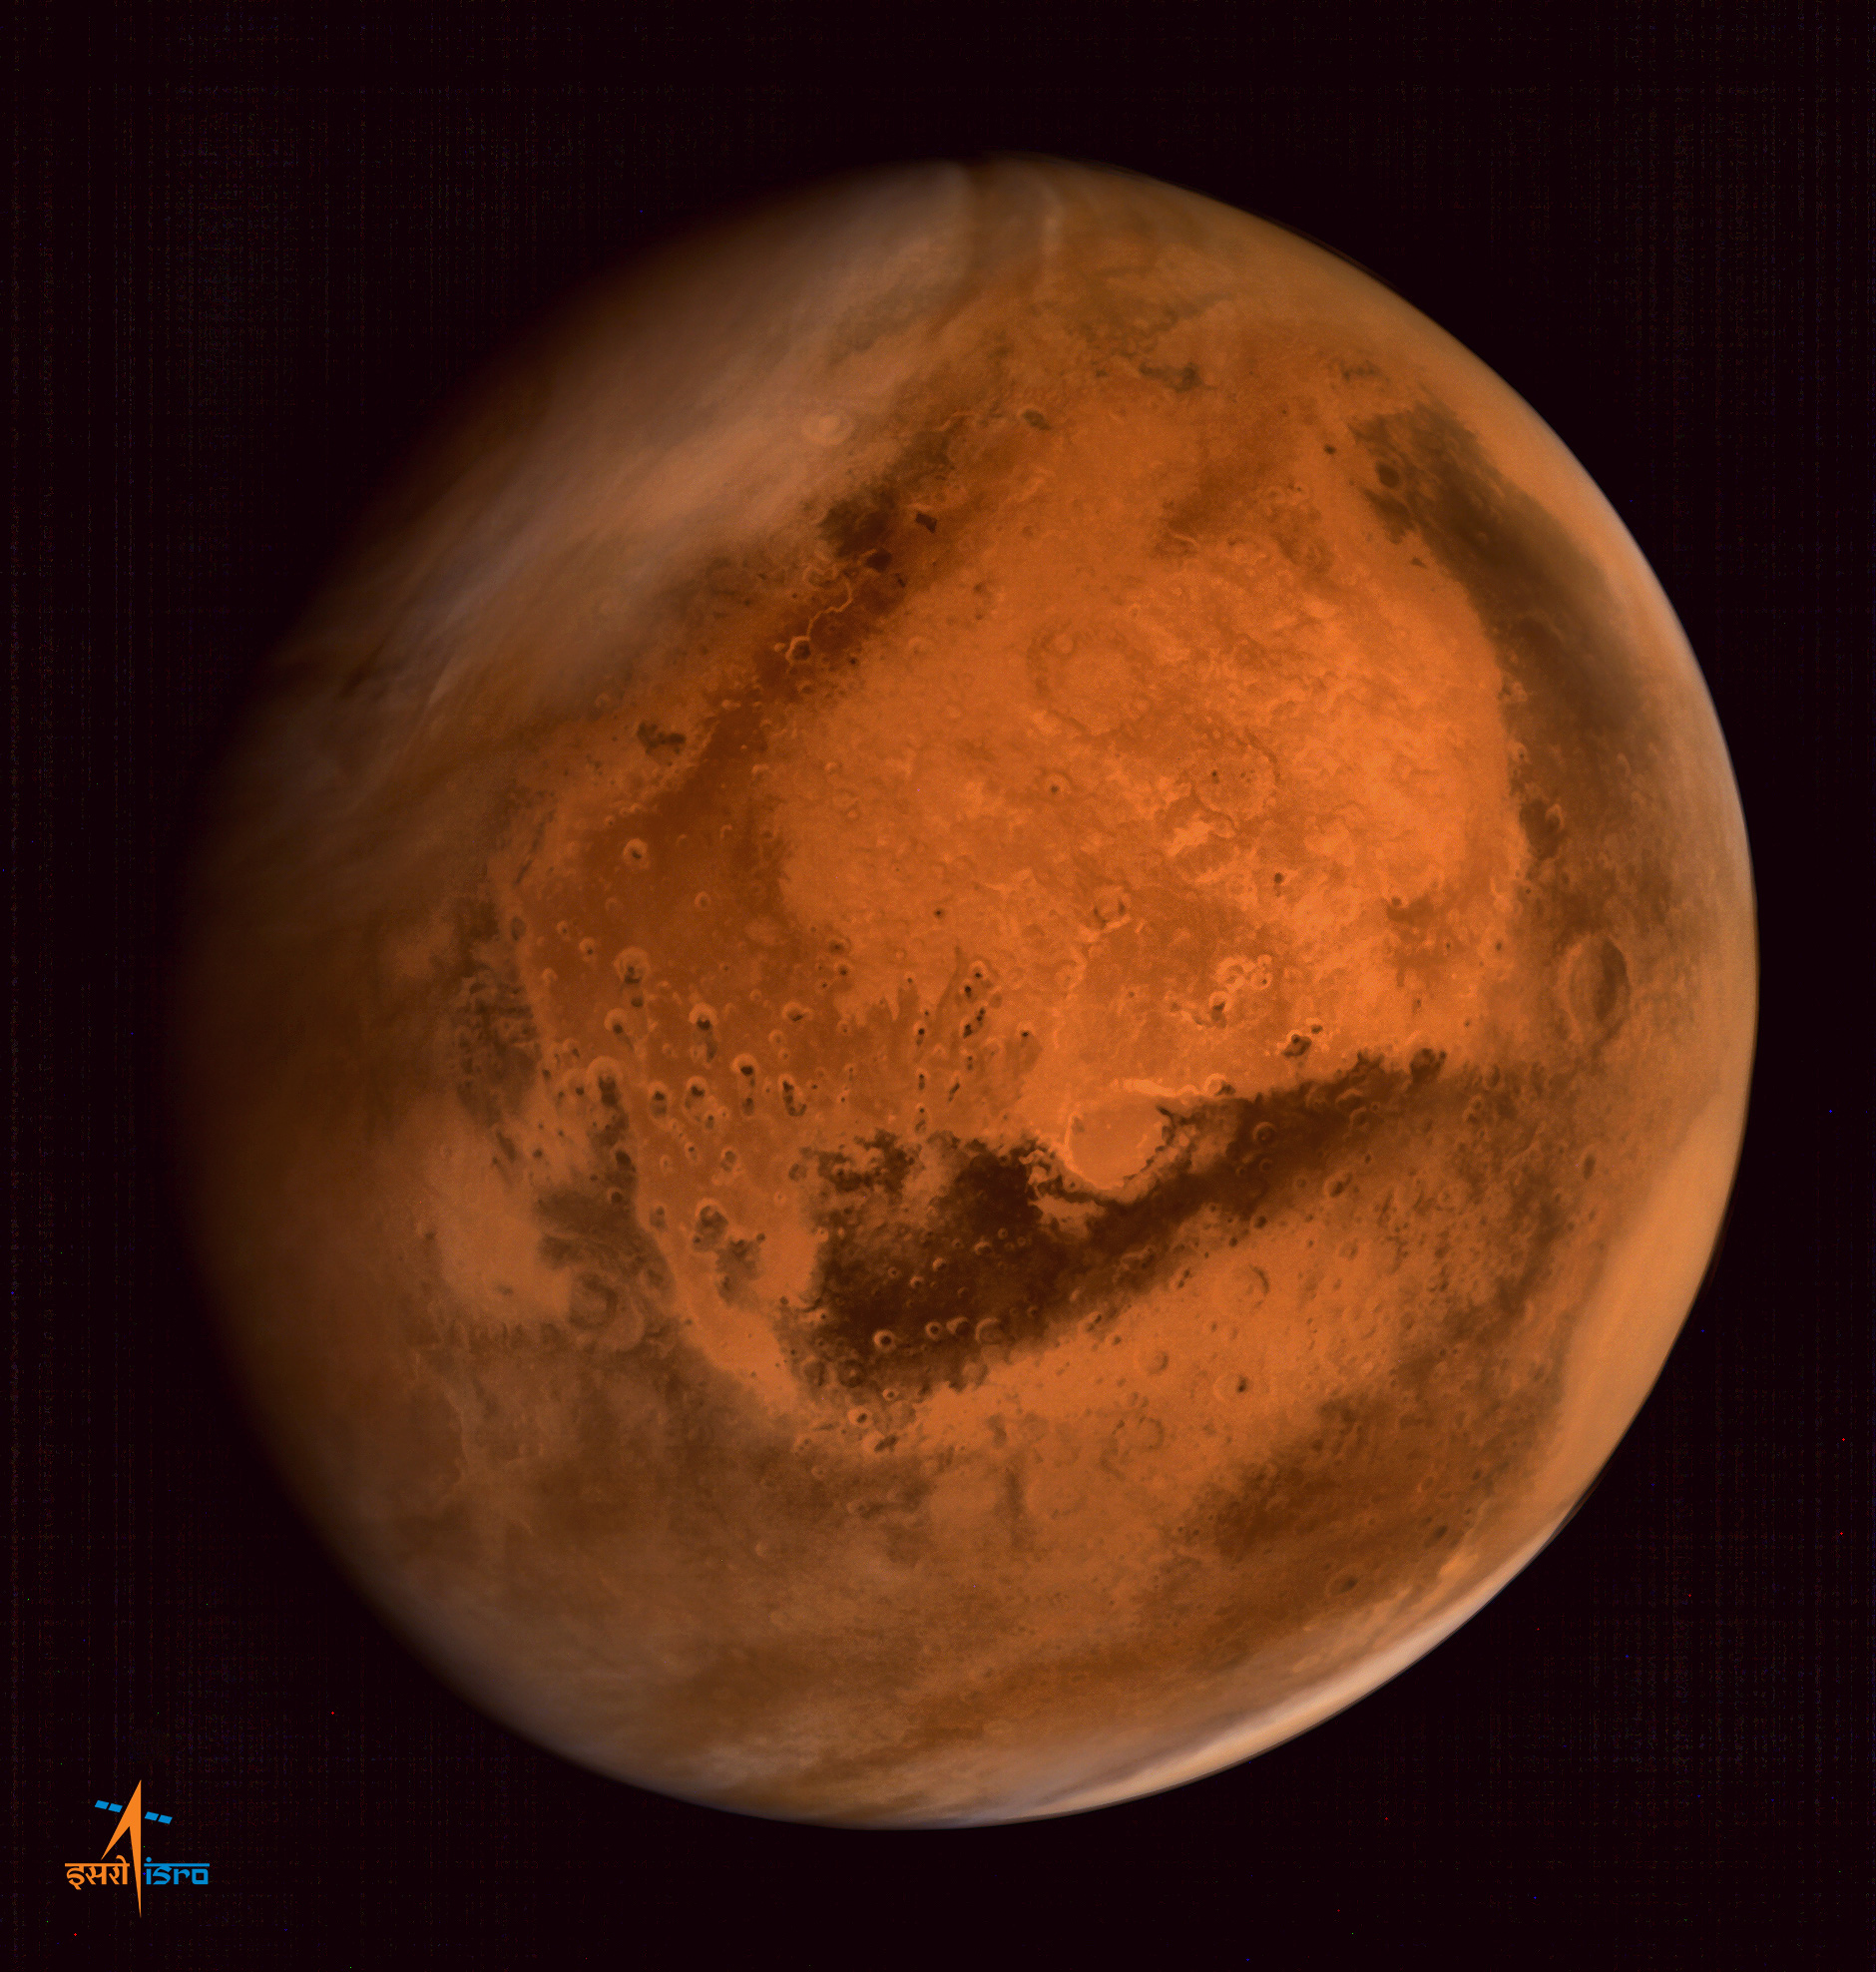 This image of Mars was taken in October 24, with MOM taking advantage of its elliptical orbit to capture the planet's breadth. Credit: ISRO